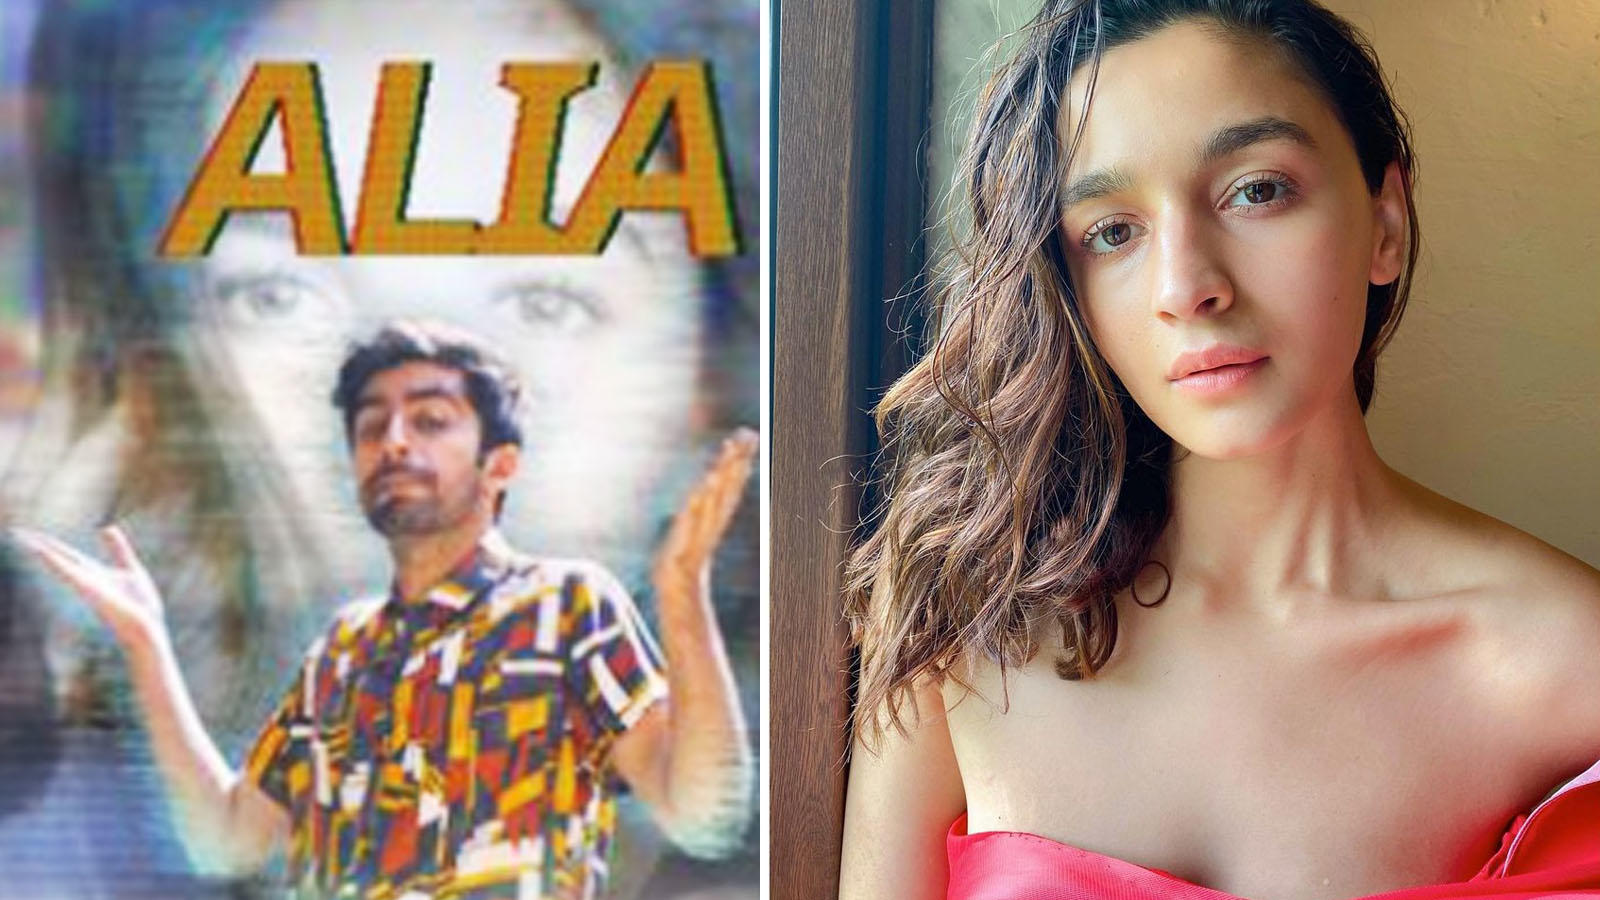 alia-bhatt-reacts-to-pakistani-rapper-muhammad-shahs-rap-song-on-her